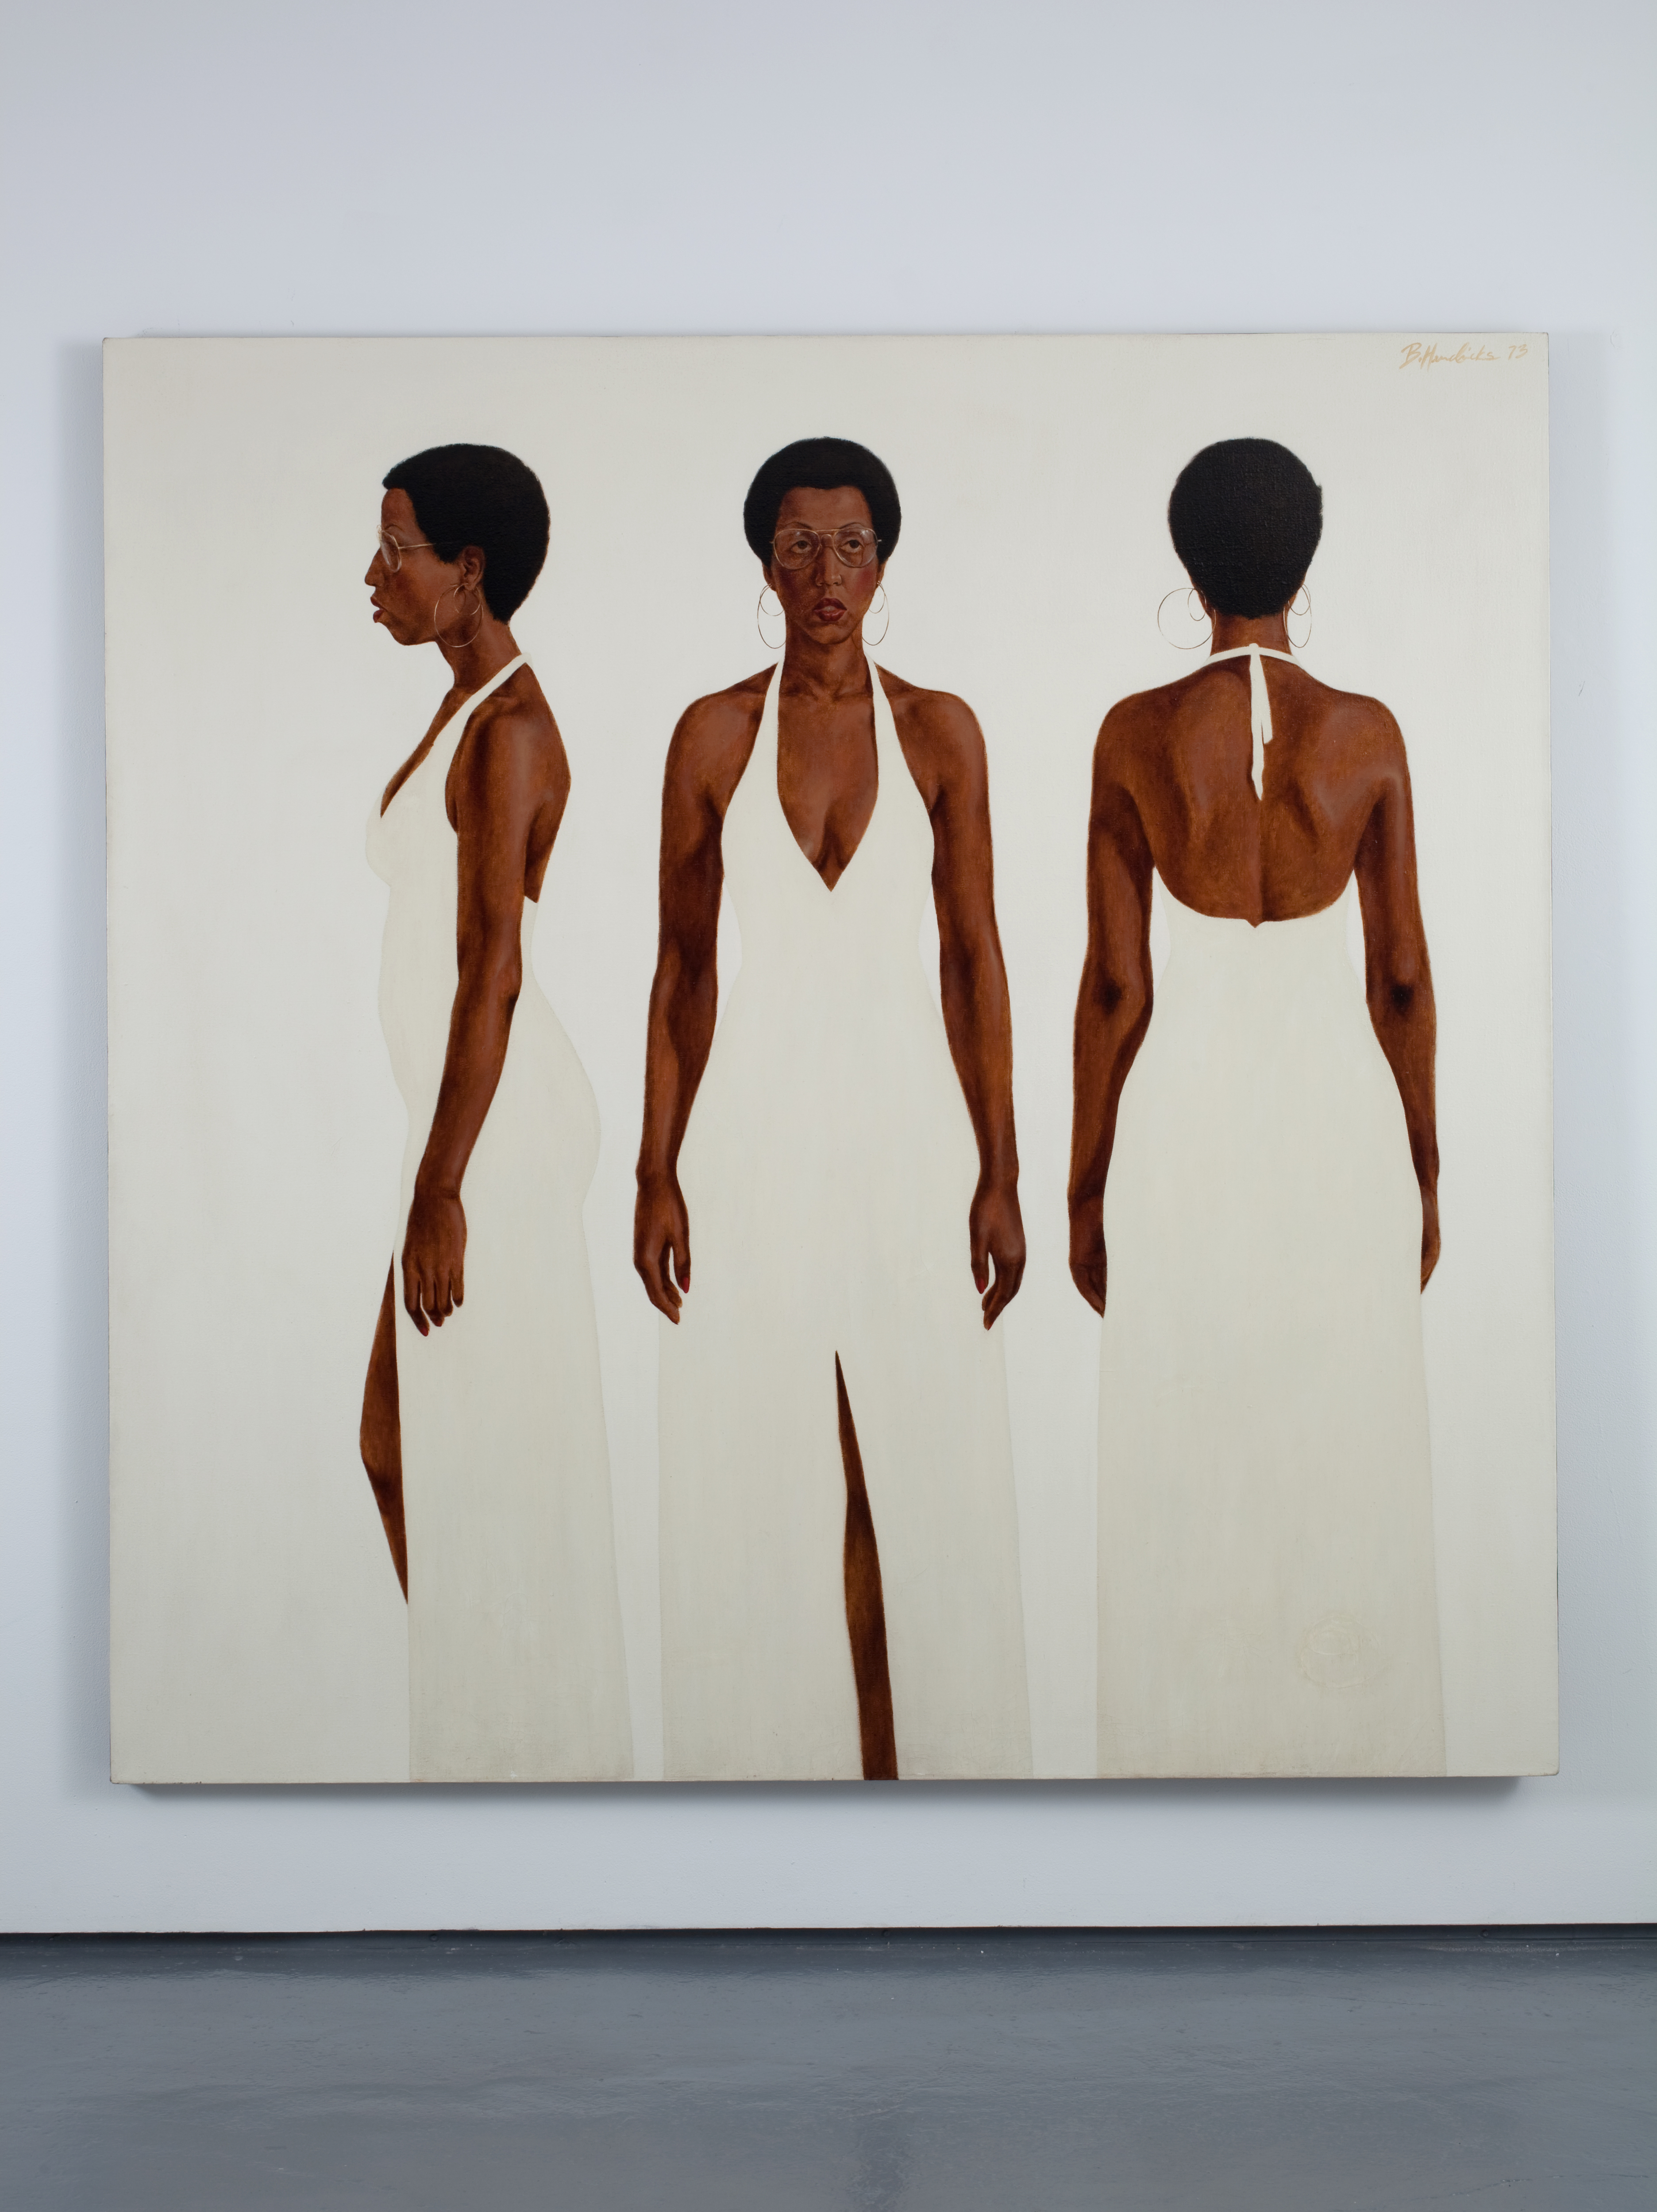 This photograph of a gallery shows a painting that depicts three different full-length views of a Black woman standing with her arms relaxed at her side. She wears hoop earrings, wire-rimmed glasses, and a long, white gown with a slit and a halter neck. Positioned against a matte white background, she stands as if seen, from left to right, in profile, from the front, and from behind.